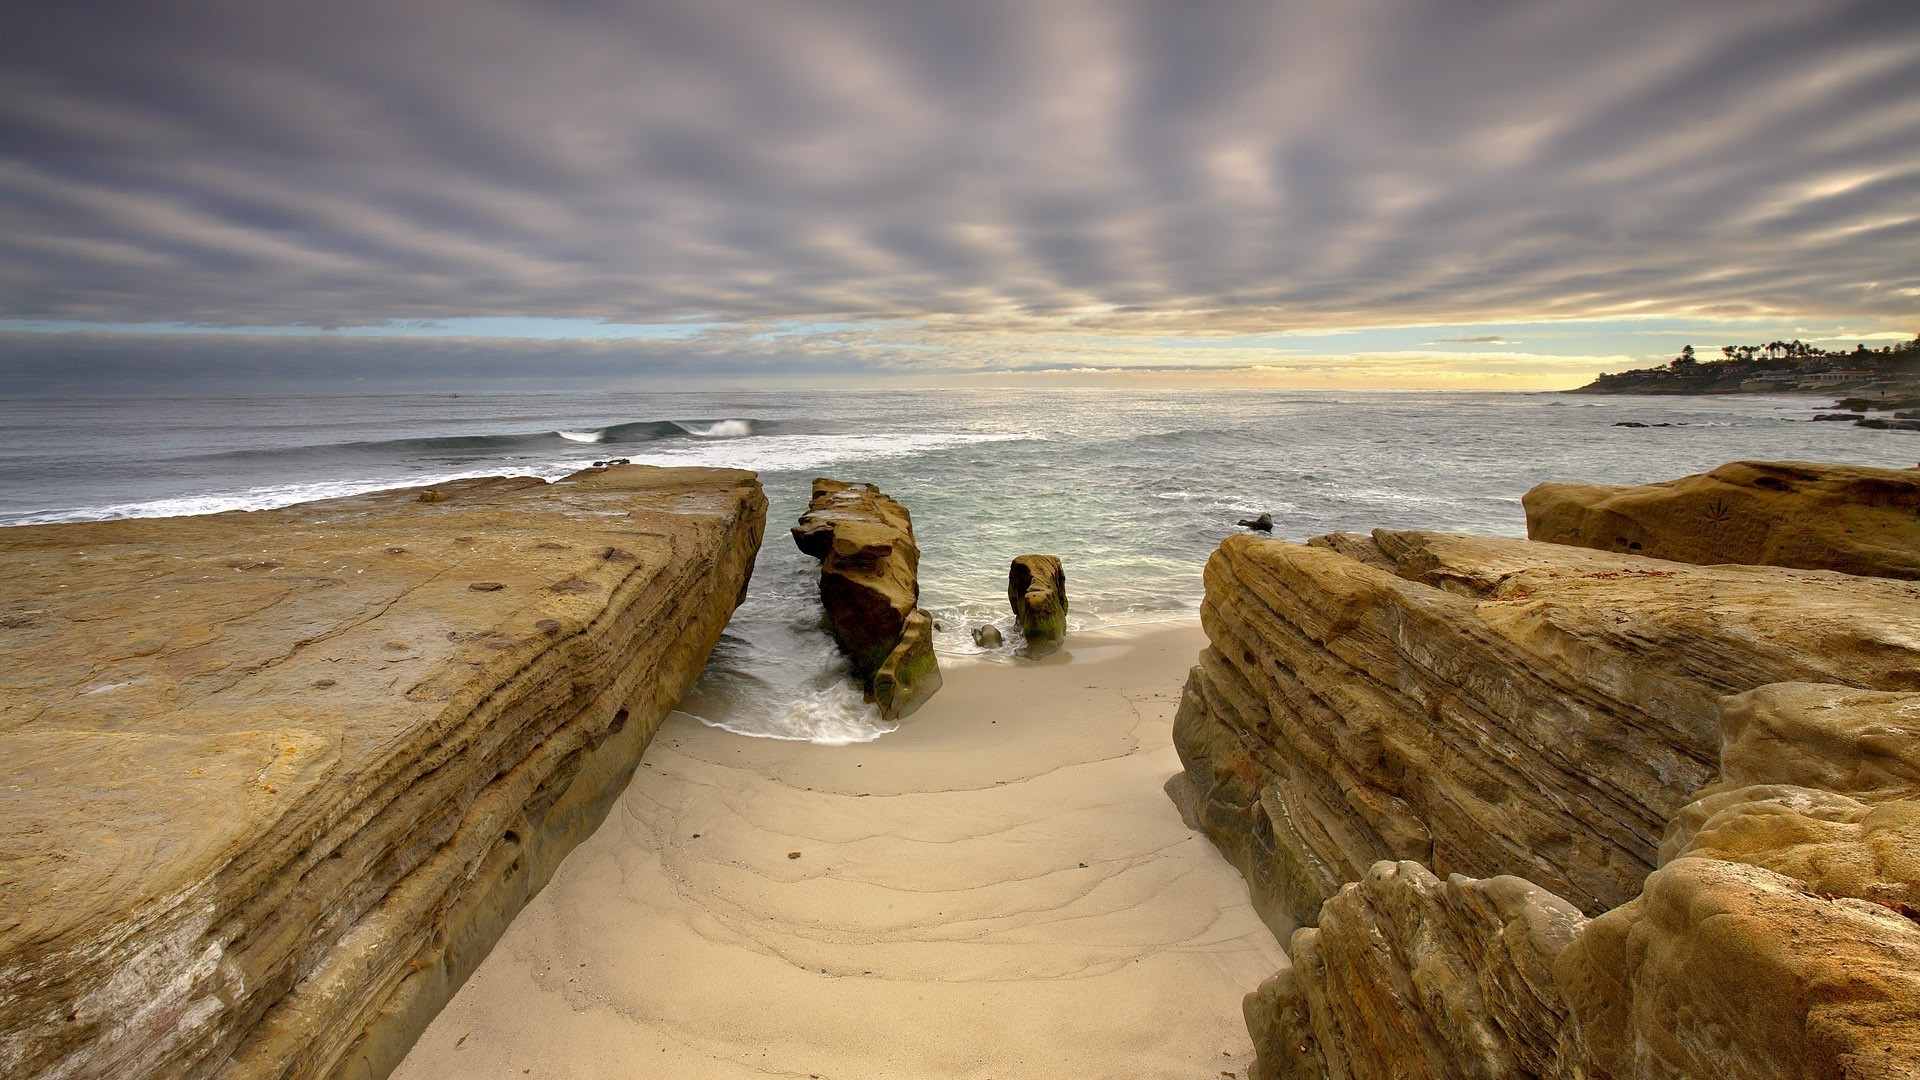 nature, Landscape, Water, Rock, San Diego, California, USA, Sea, Waves,  Coast, Beach, Sand, Clouds, Palm Trees, Sunlight, Long Exposure Wallpapers  HD …